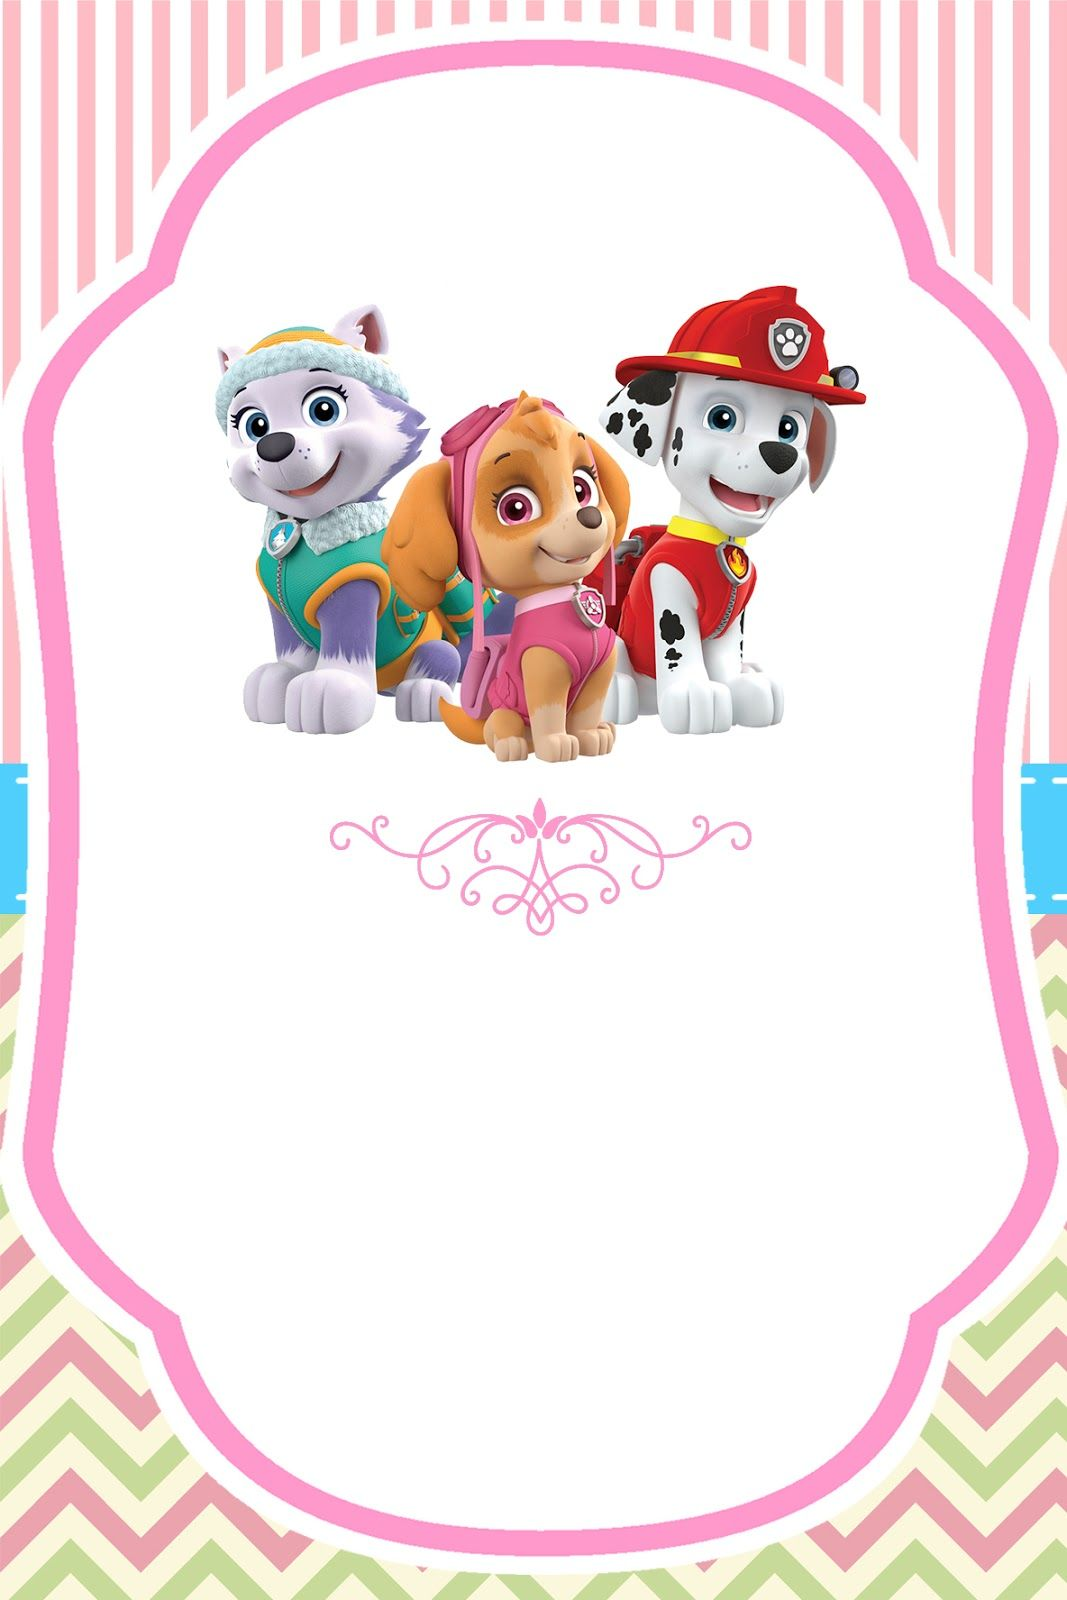 Paw Patrol For Girls Free Printable Kit In 2020 Paw